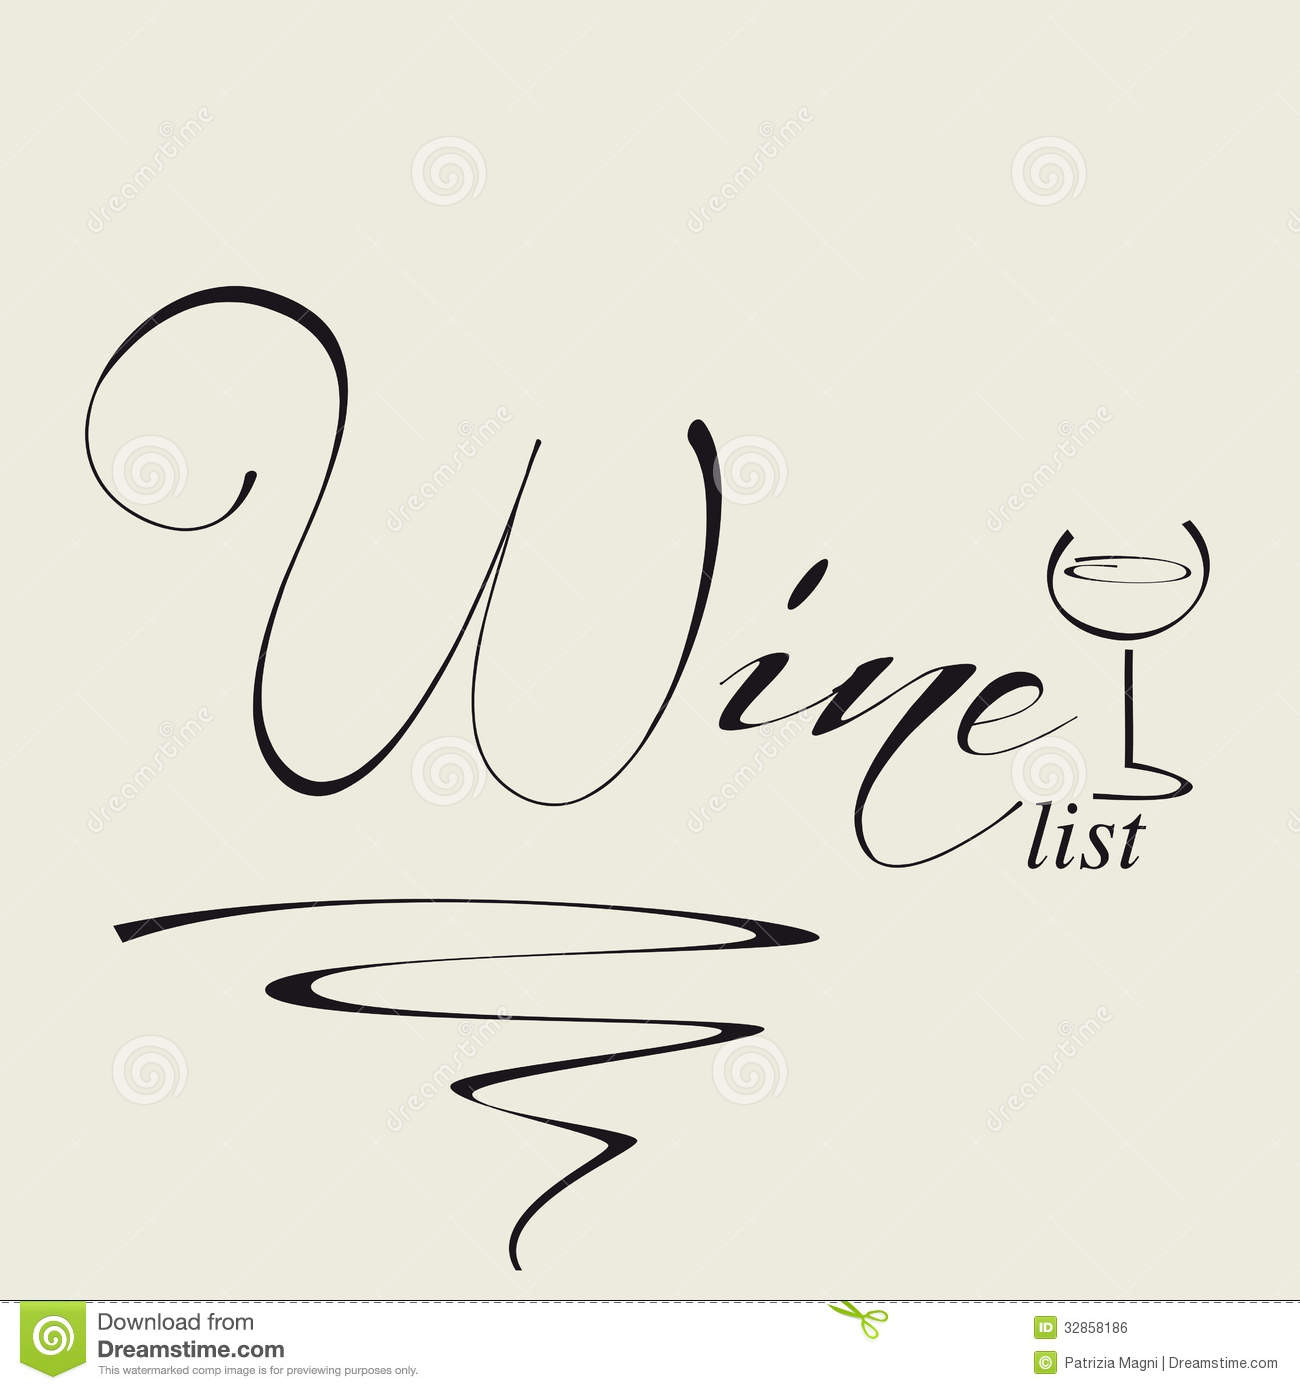 Cover For Wine List Royalty Free Stock Image - Image: 32858186